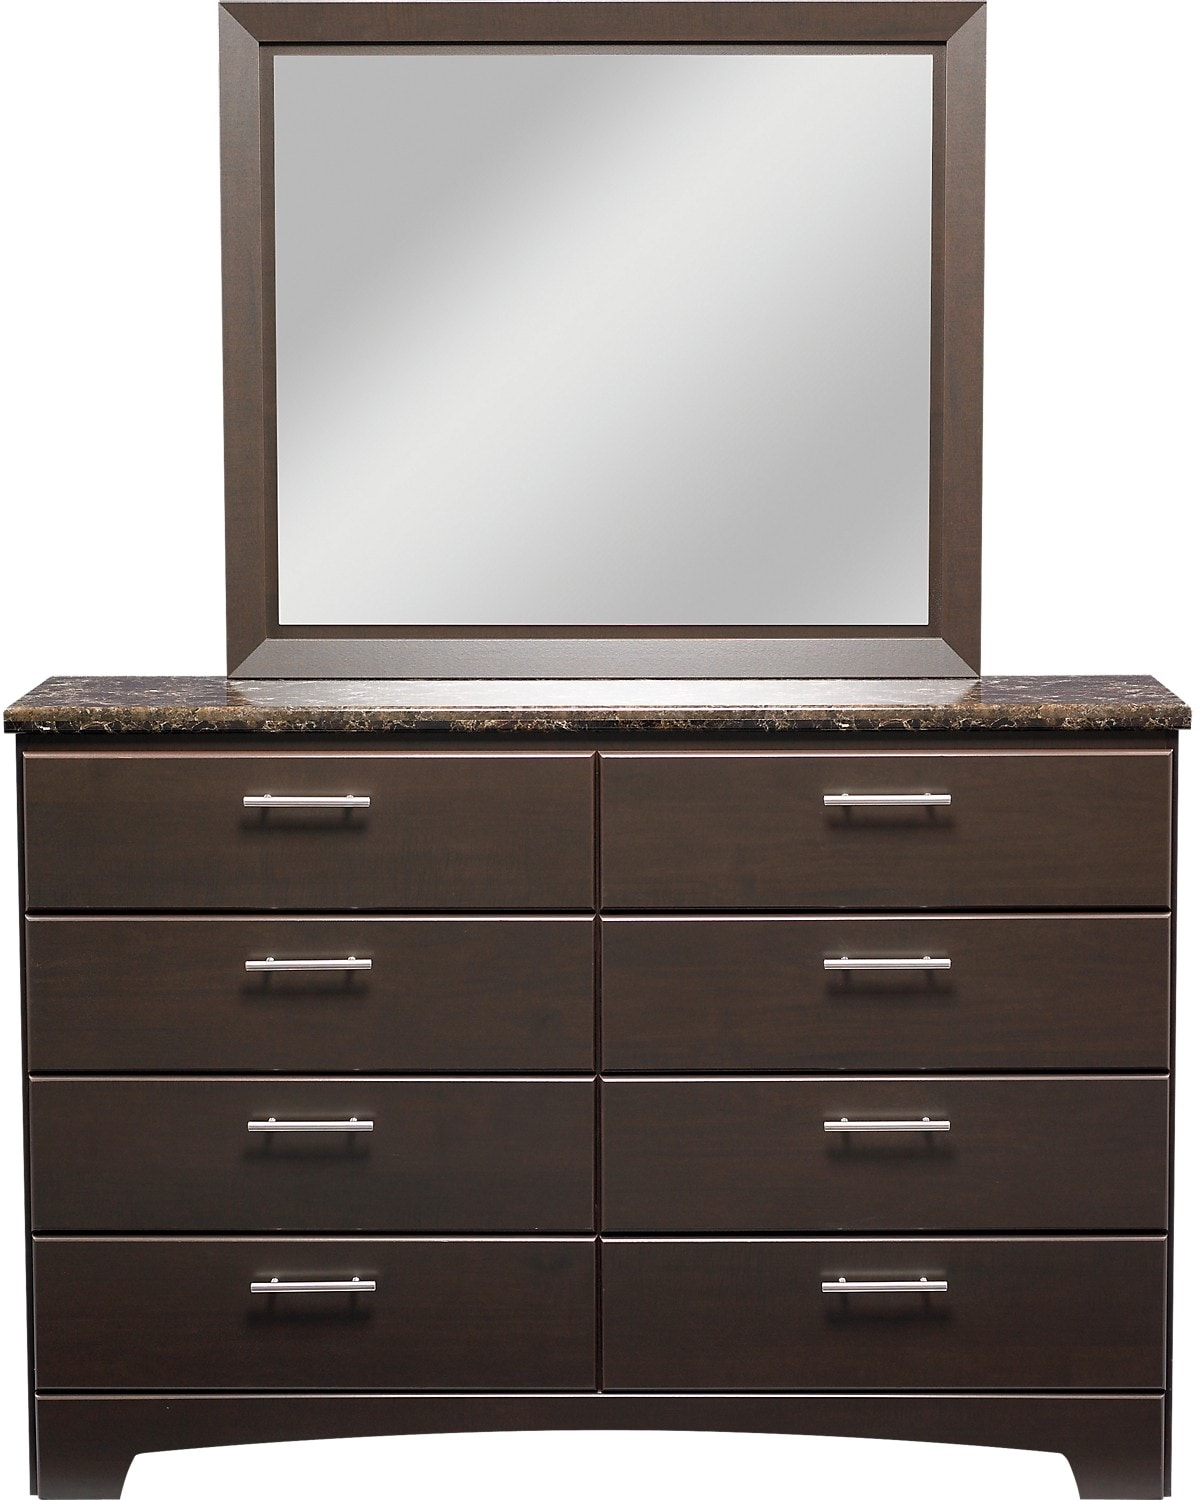 oxford drawer dresser  the brick - click to change image